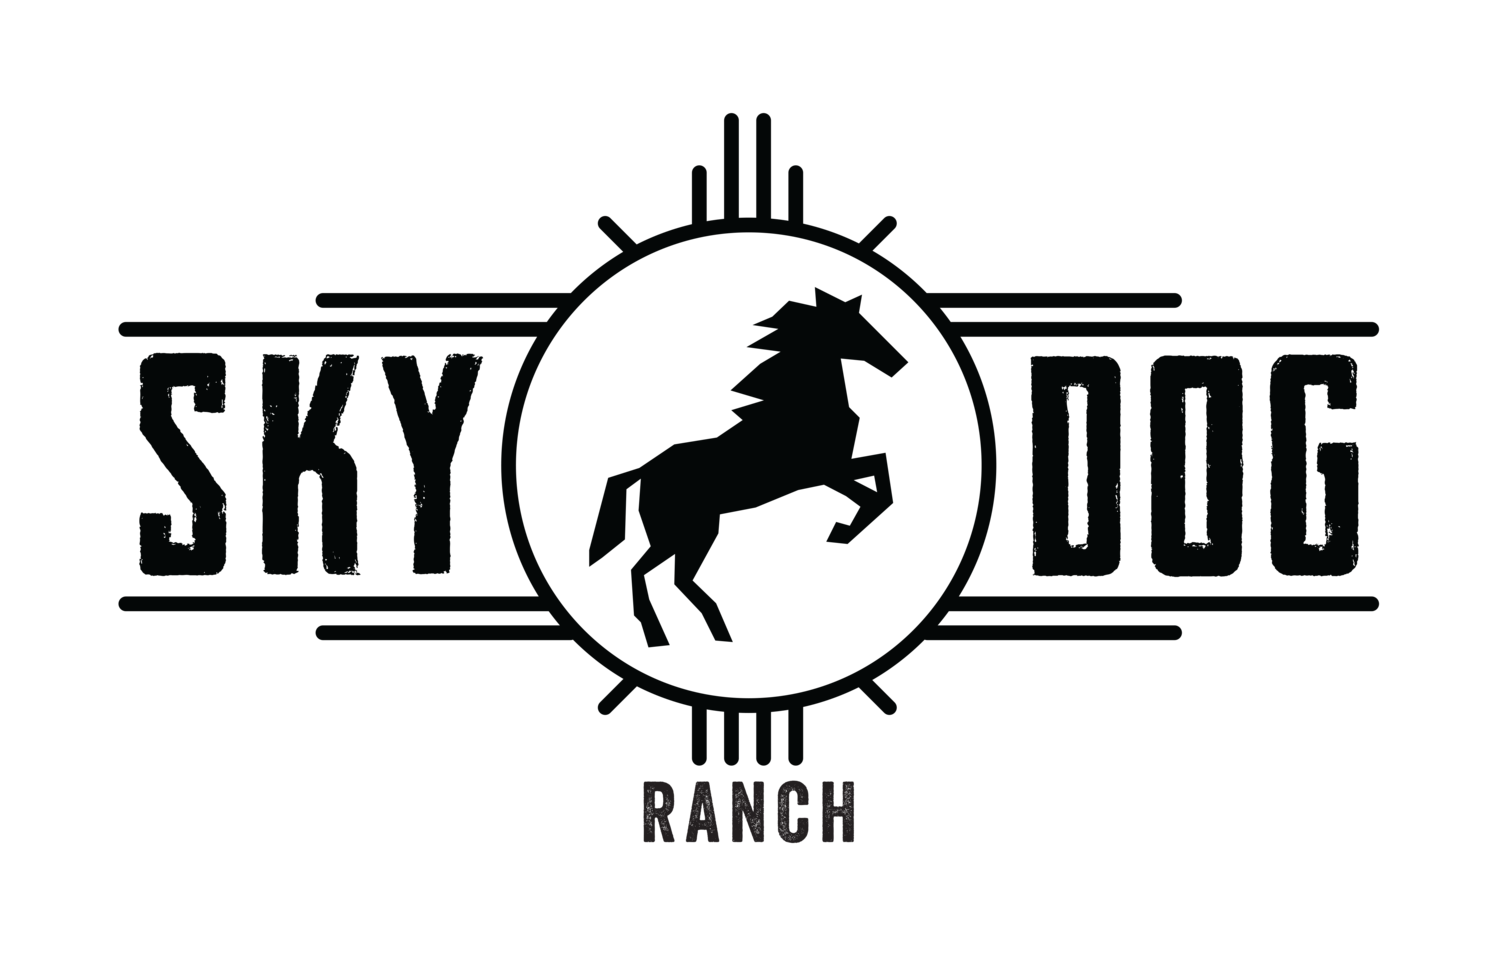 Sky Dog Ranch